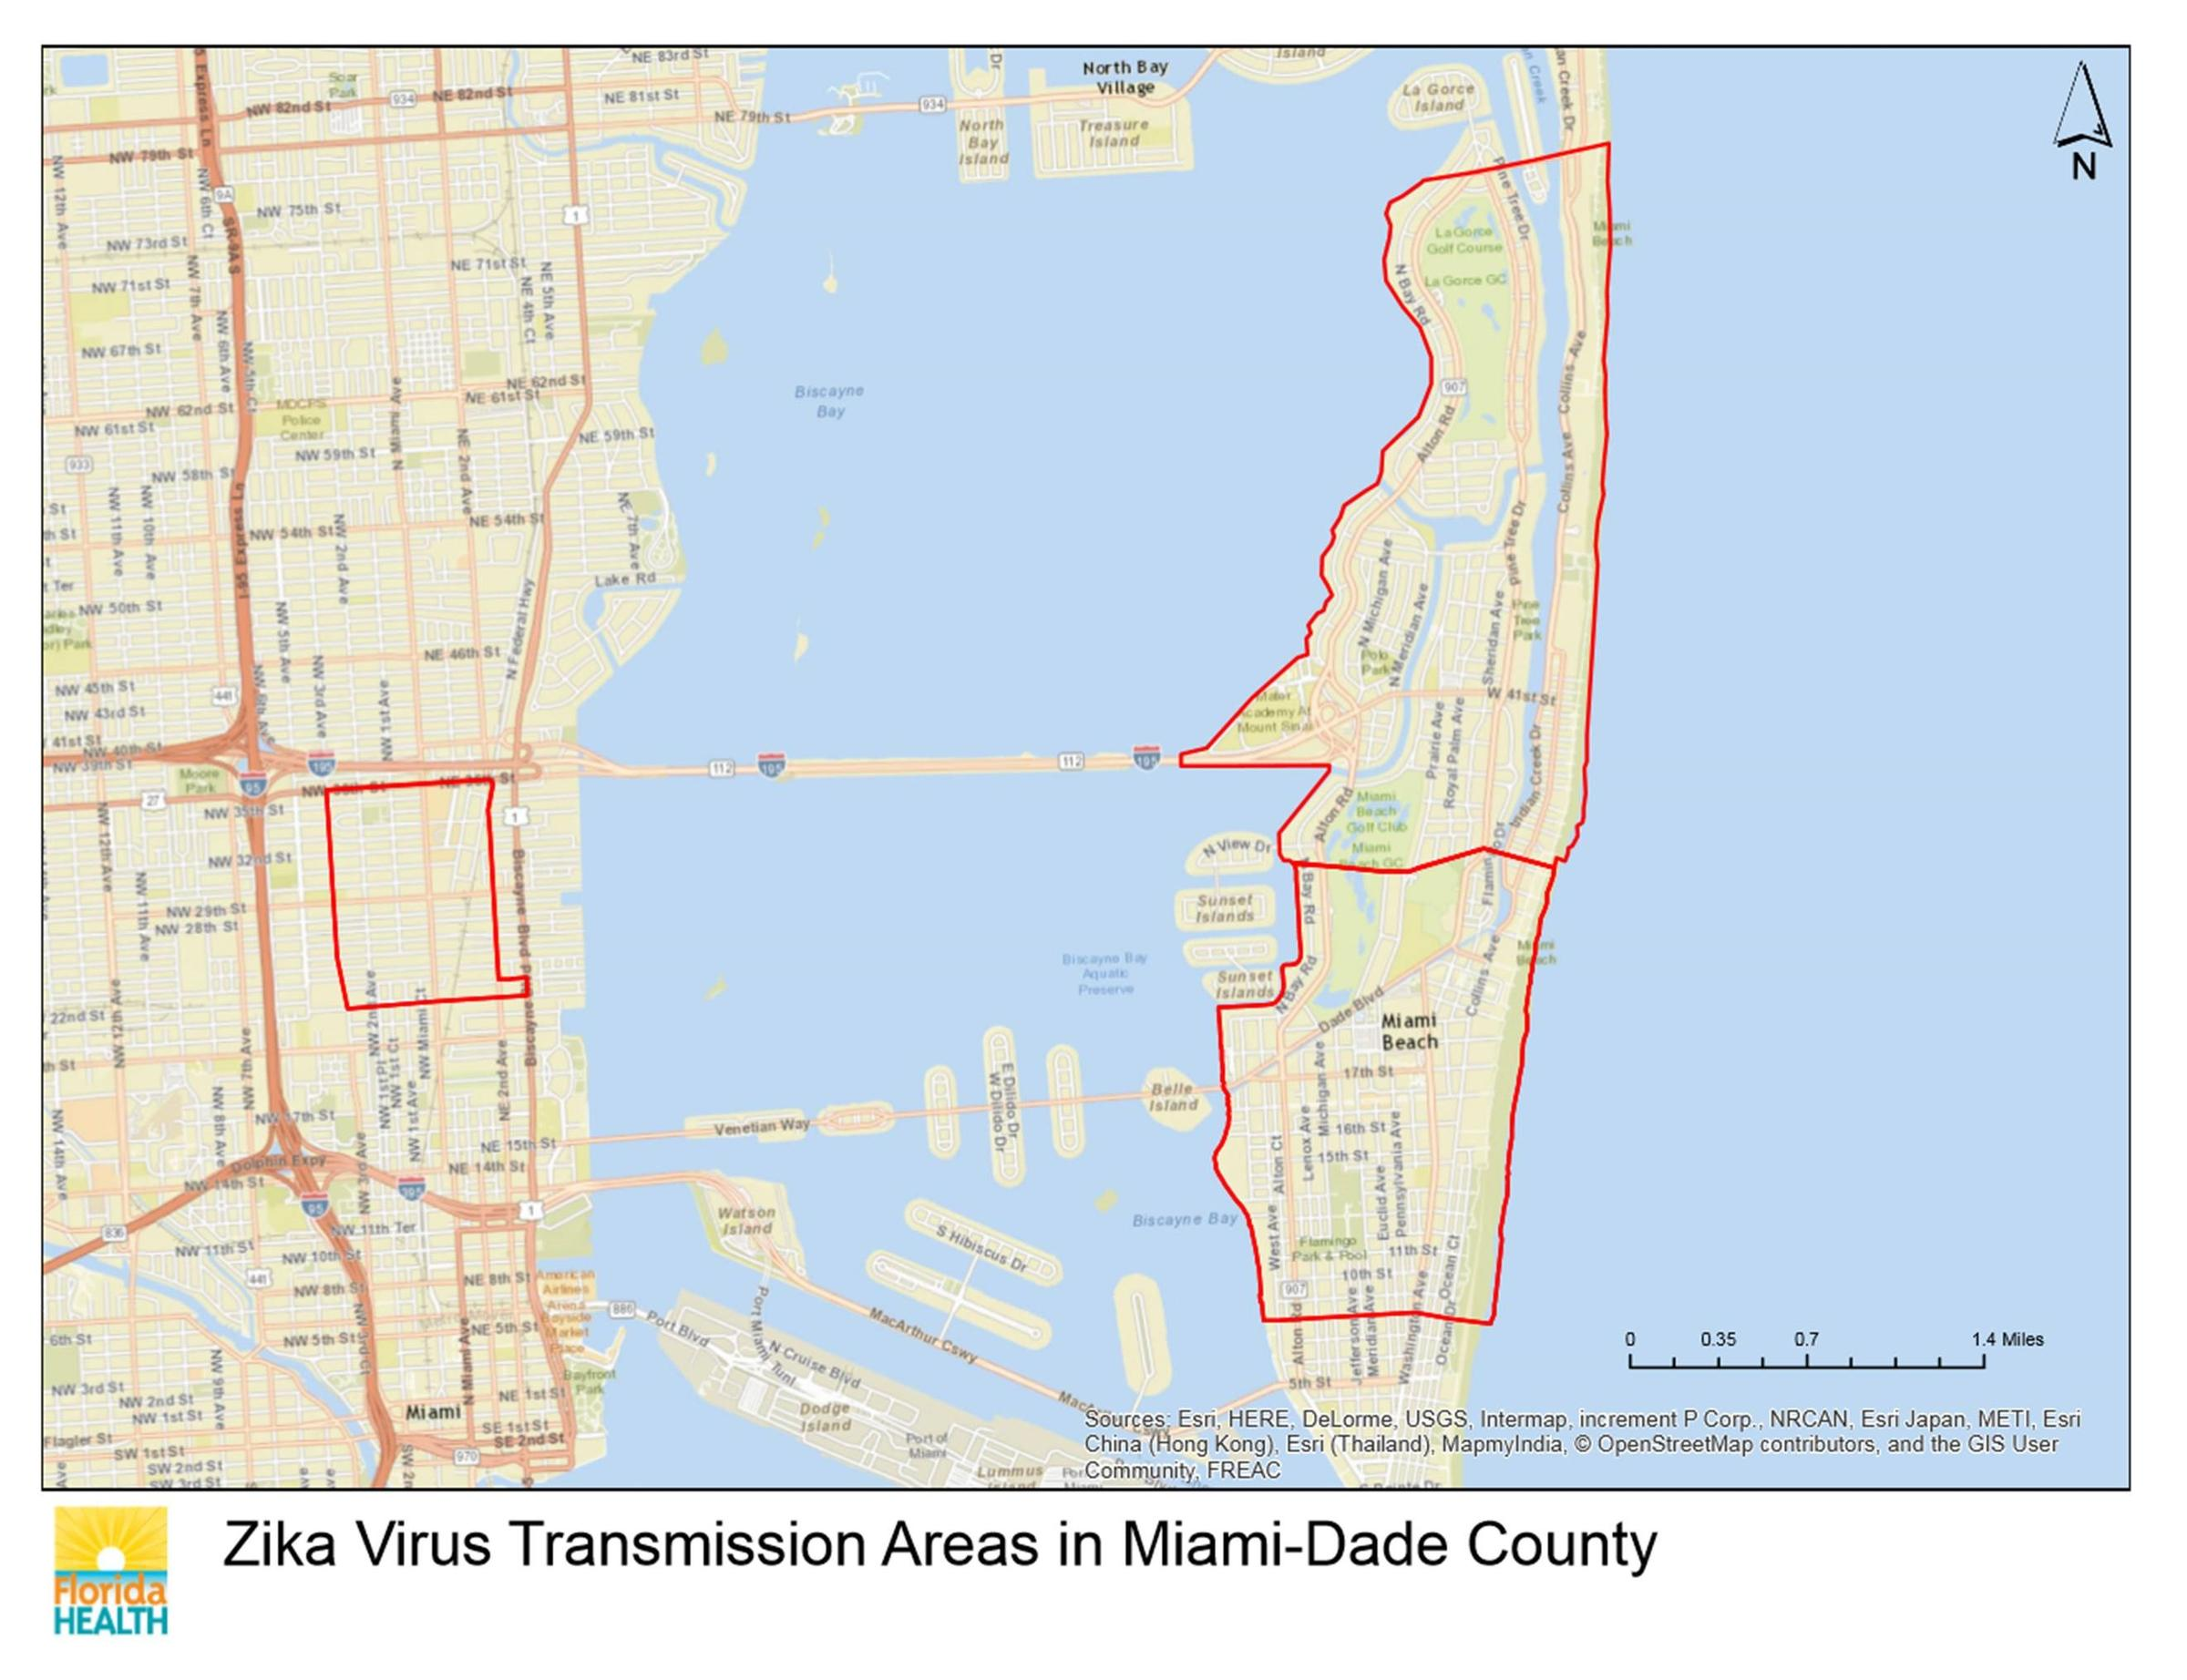 Officials Expand Miami Beach Zika Transmission Zone